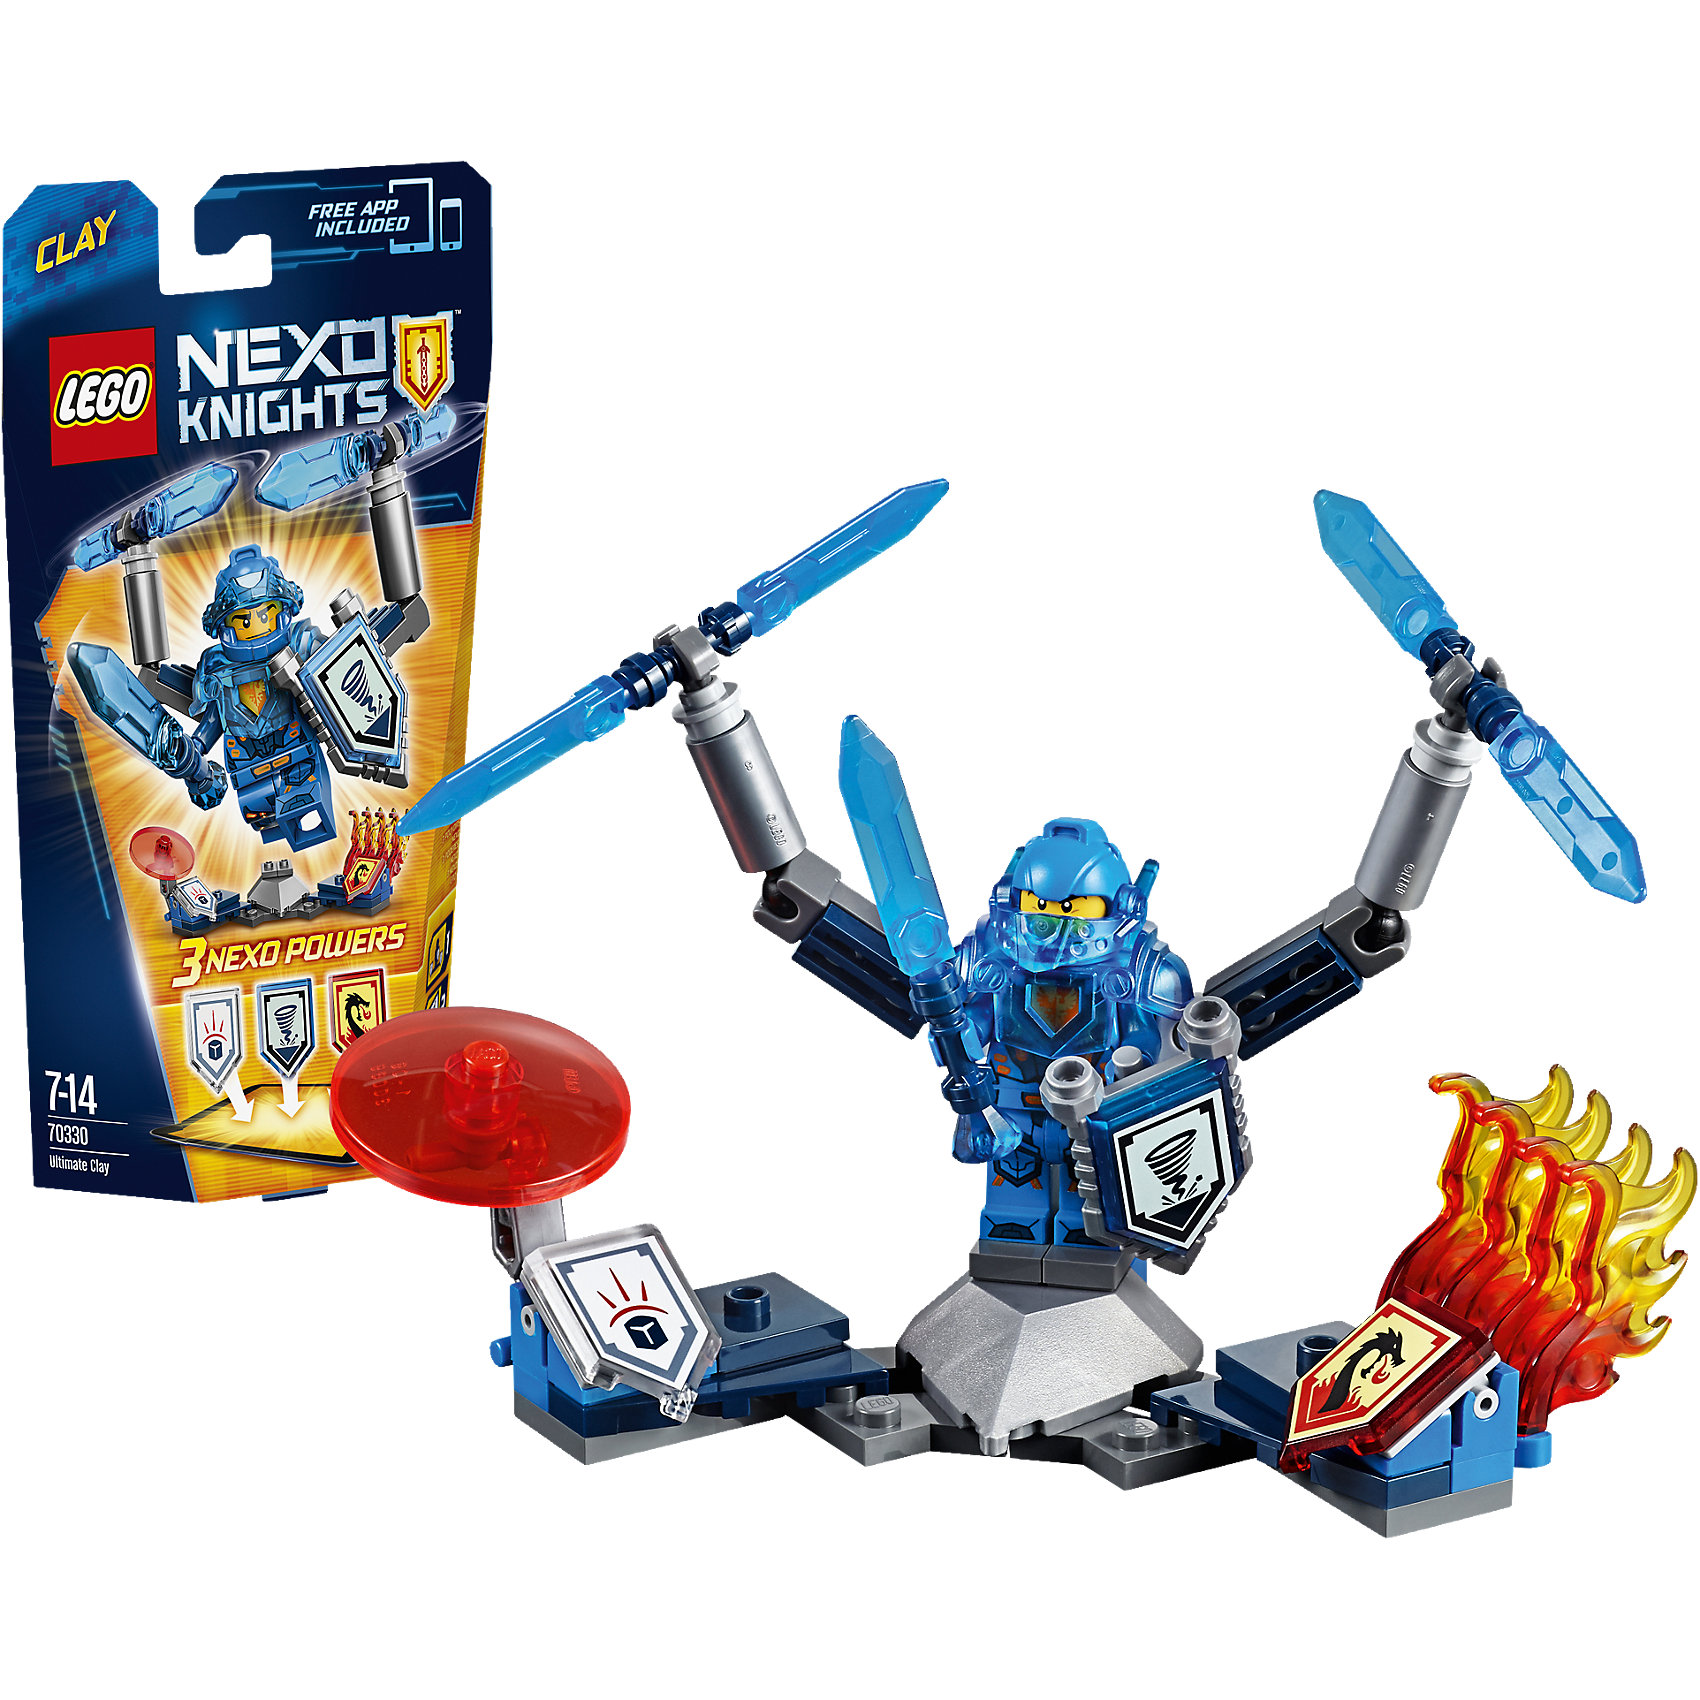 LEGO LEGO NEXO KNIGHTS 70330: Клэй – Абсолютная сила transctego led stage lamp laser light dmx 24w 14 modes 8 colors disco lights dj bar lamp sound control music stage lamps